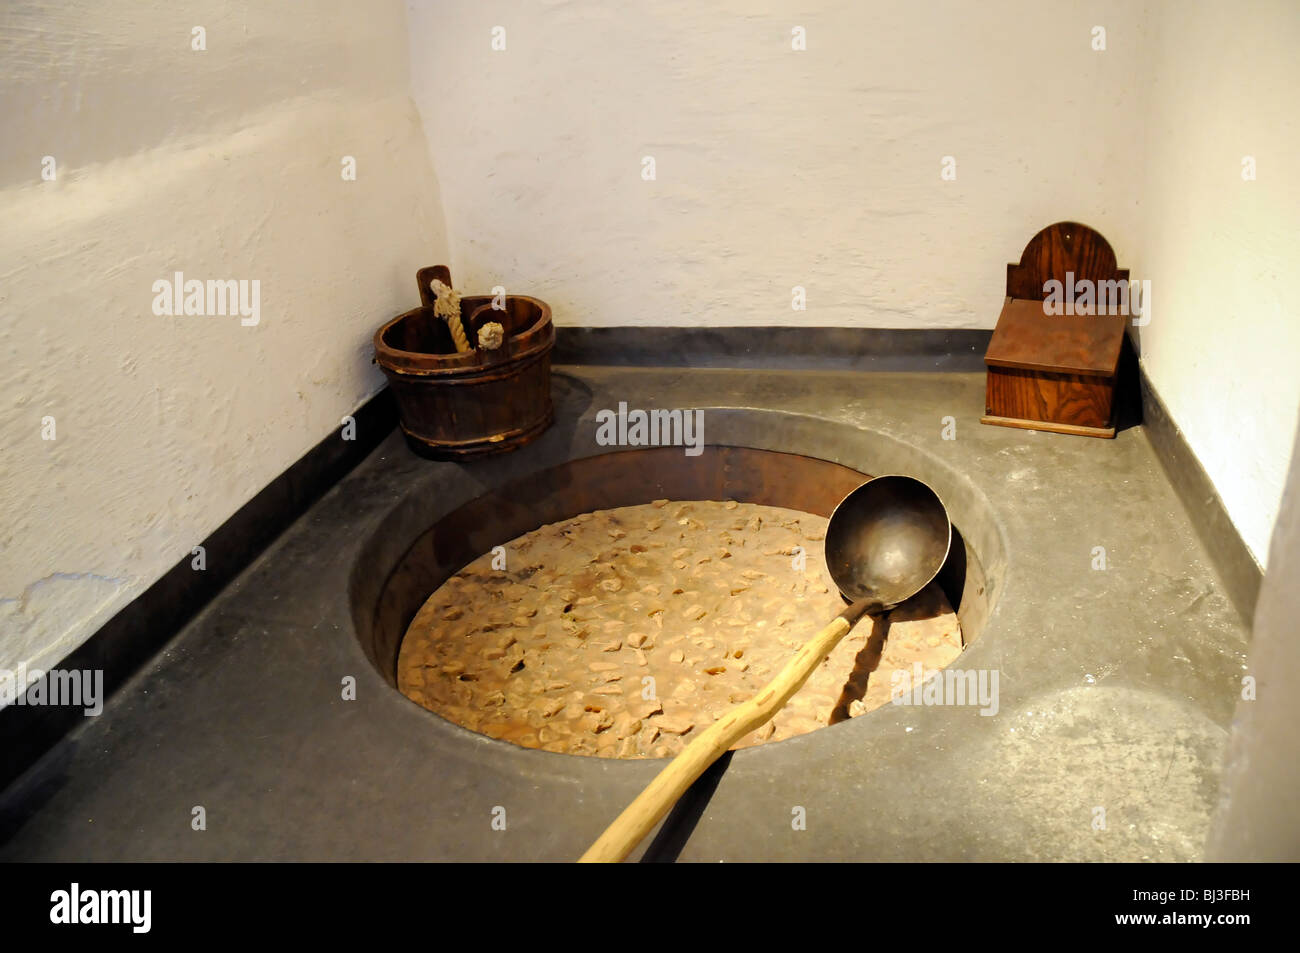 meat broth cooking in Hampton Court kitchens, London, UK - Stock Image